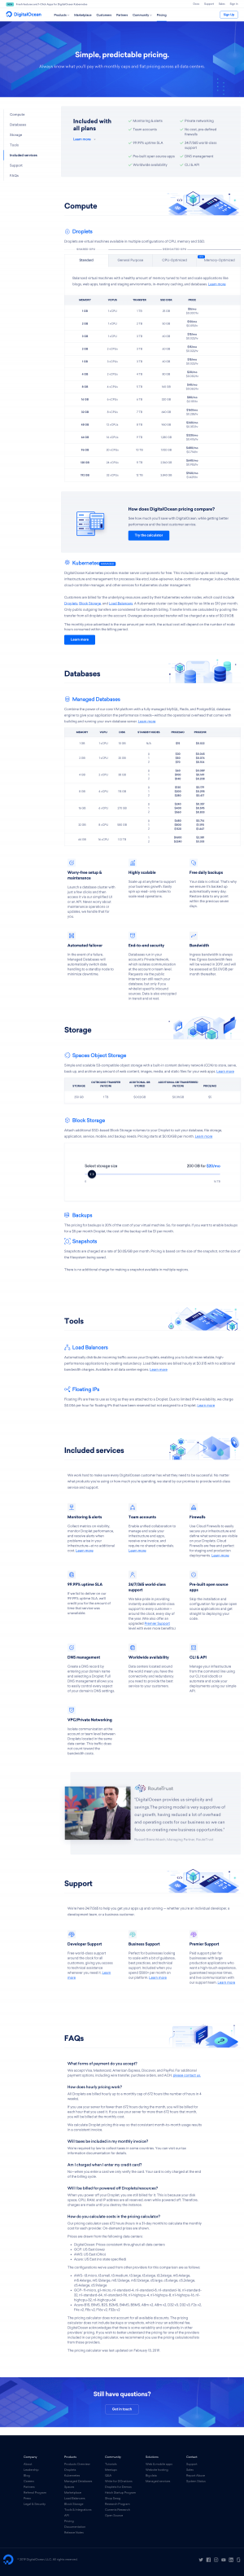 DigitalOcean - Pricing page